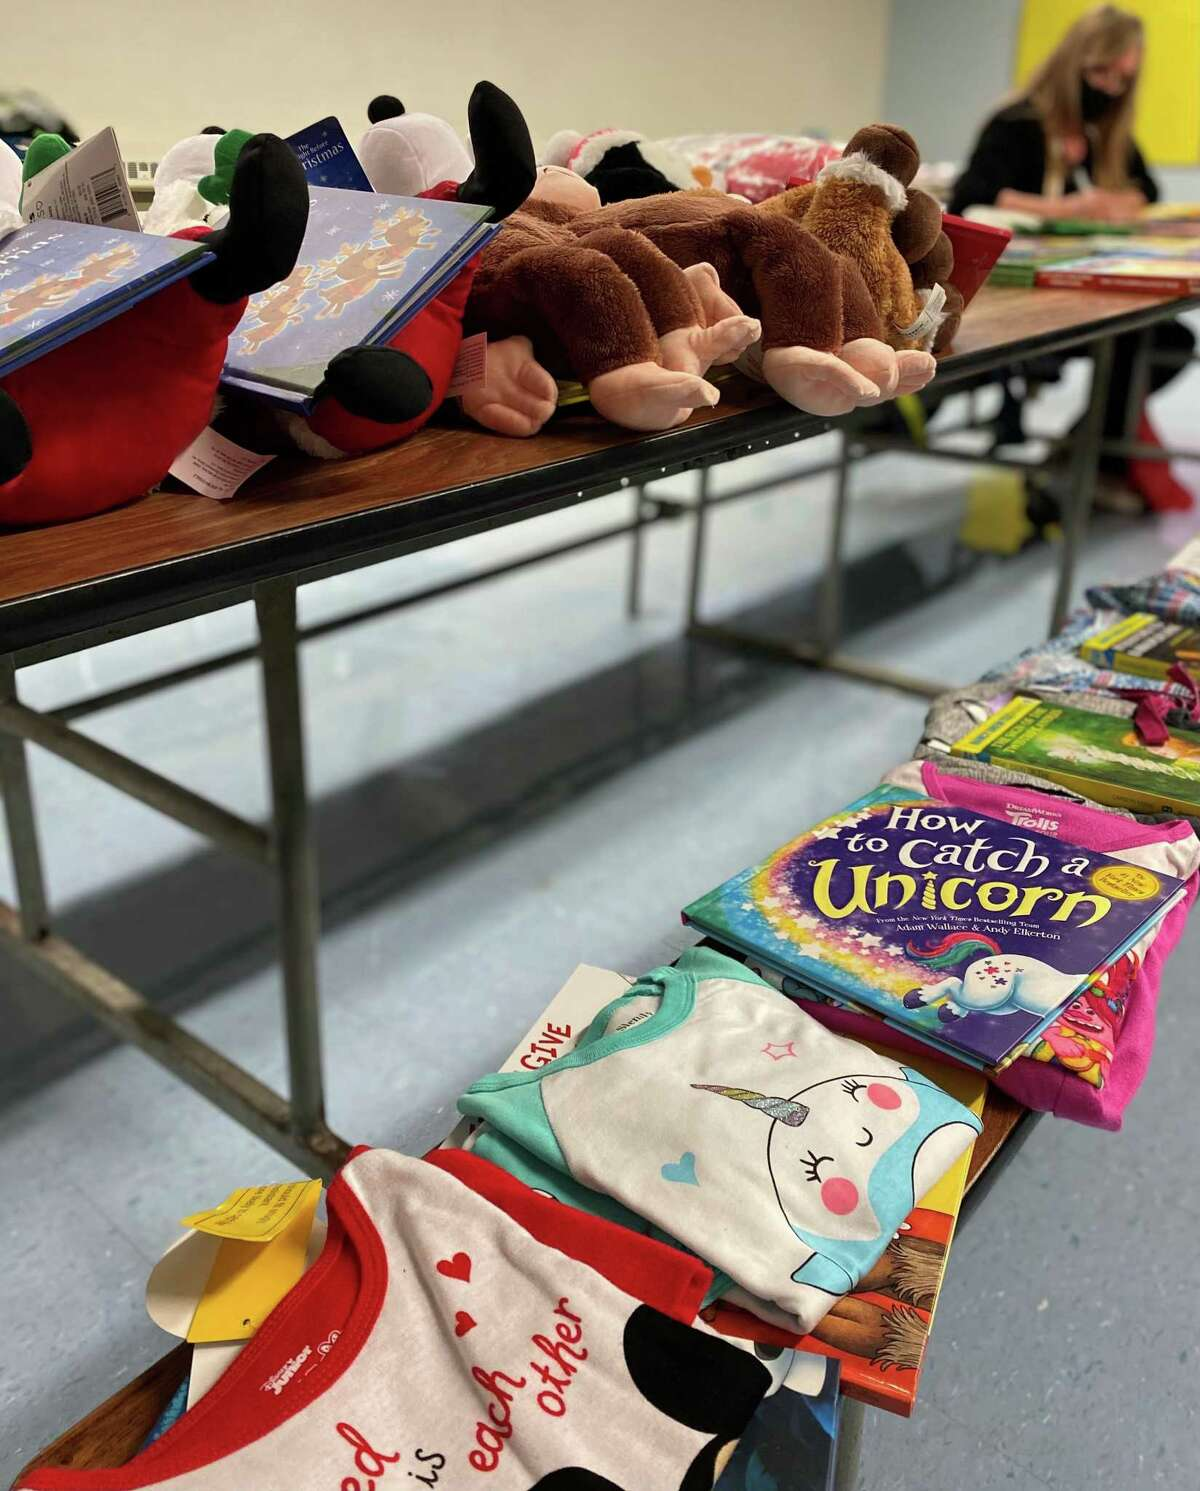 Spectrum/Local members of the Charles Merriman Chapter, Children of the American Revolution, the Roger Sherman Chapter, Daughters of the American Revolution and the United Way on Dec. 4, 2020 packaged new pajamas and books into gift bags to be given out to families in need this holiday as part of CAR's